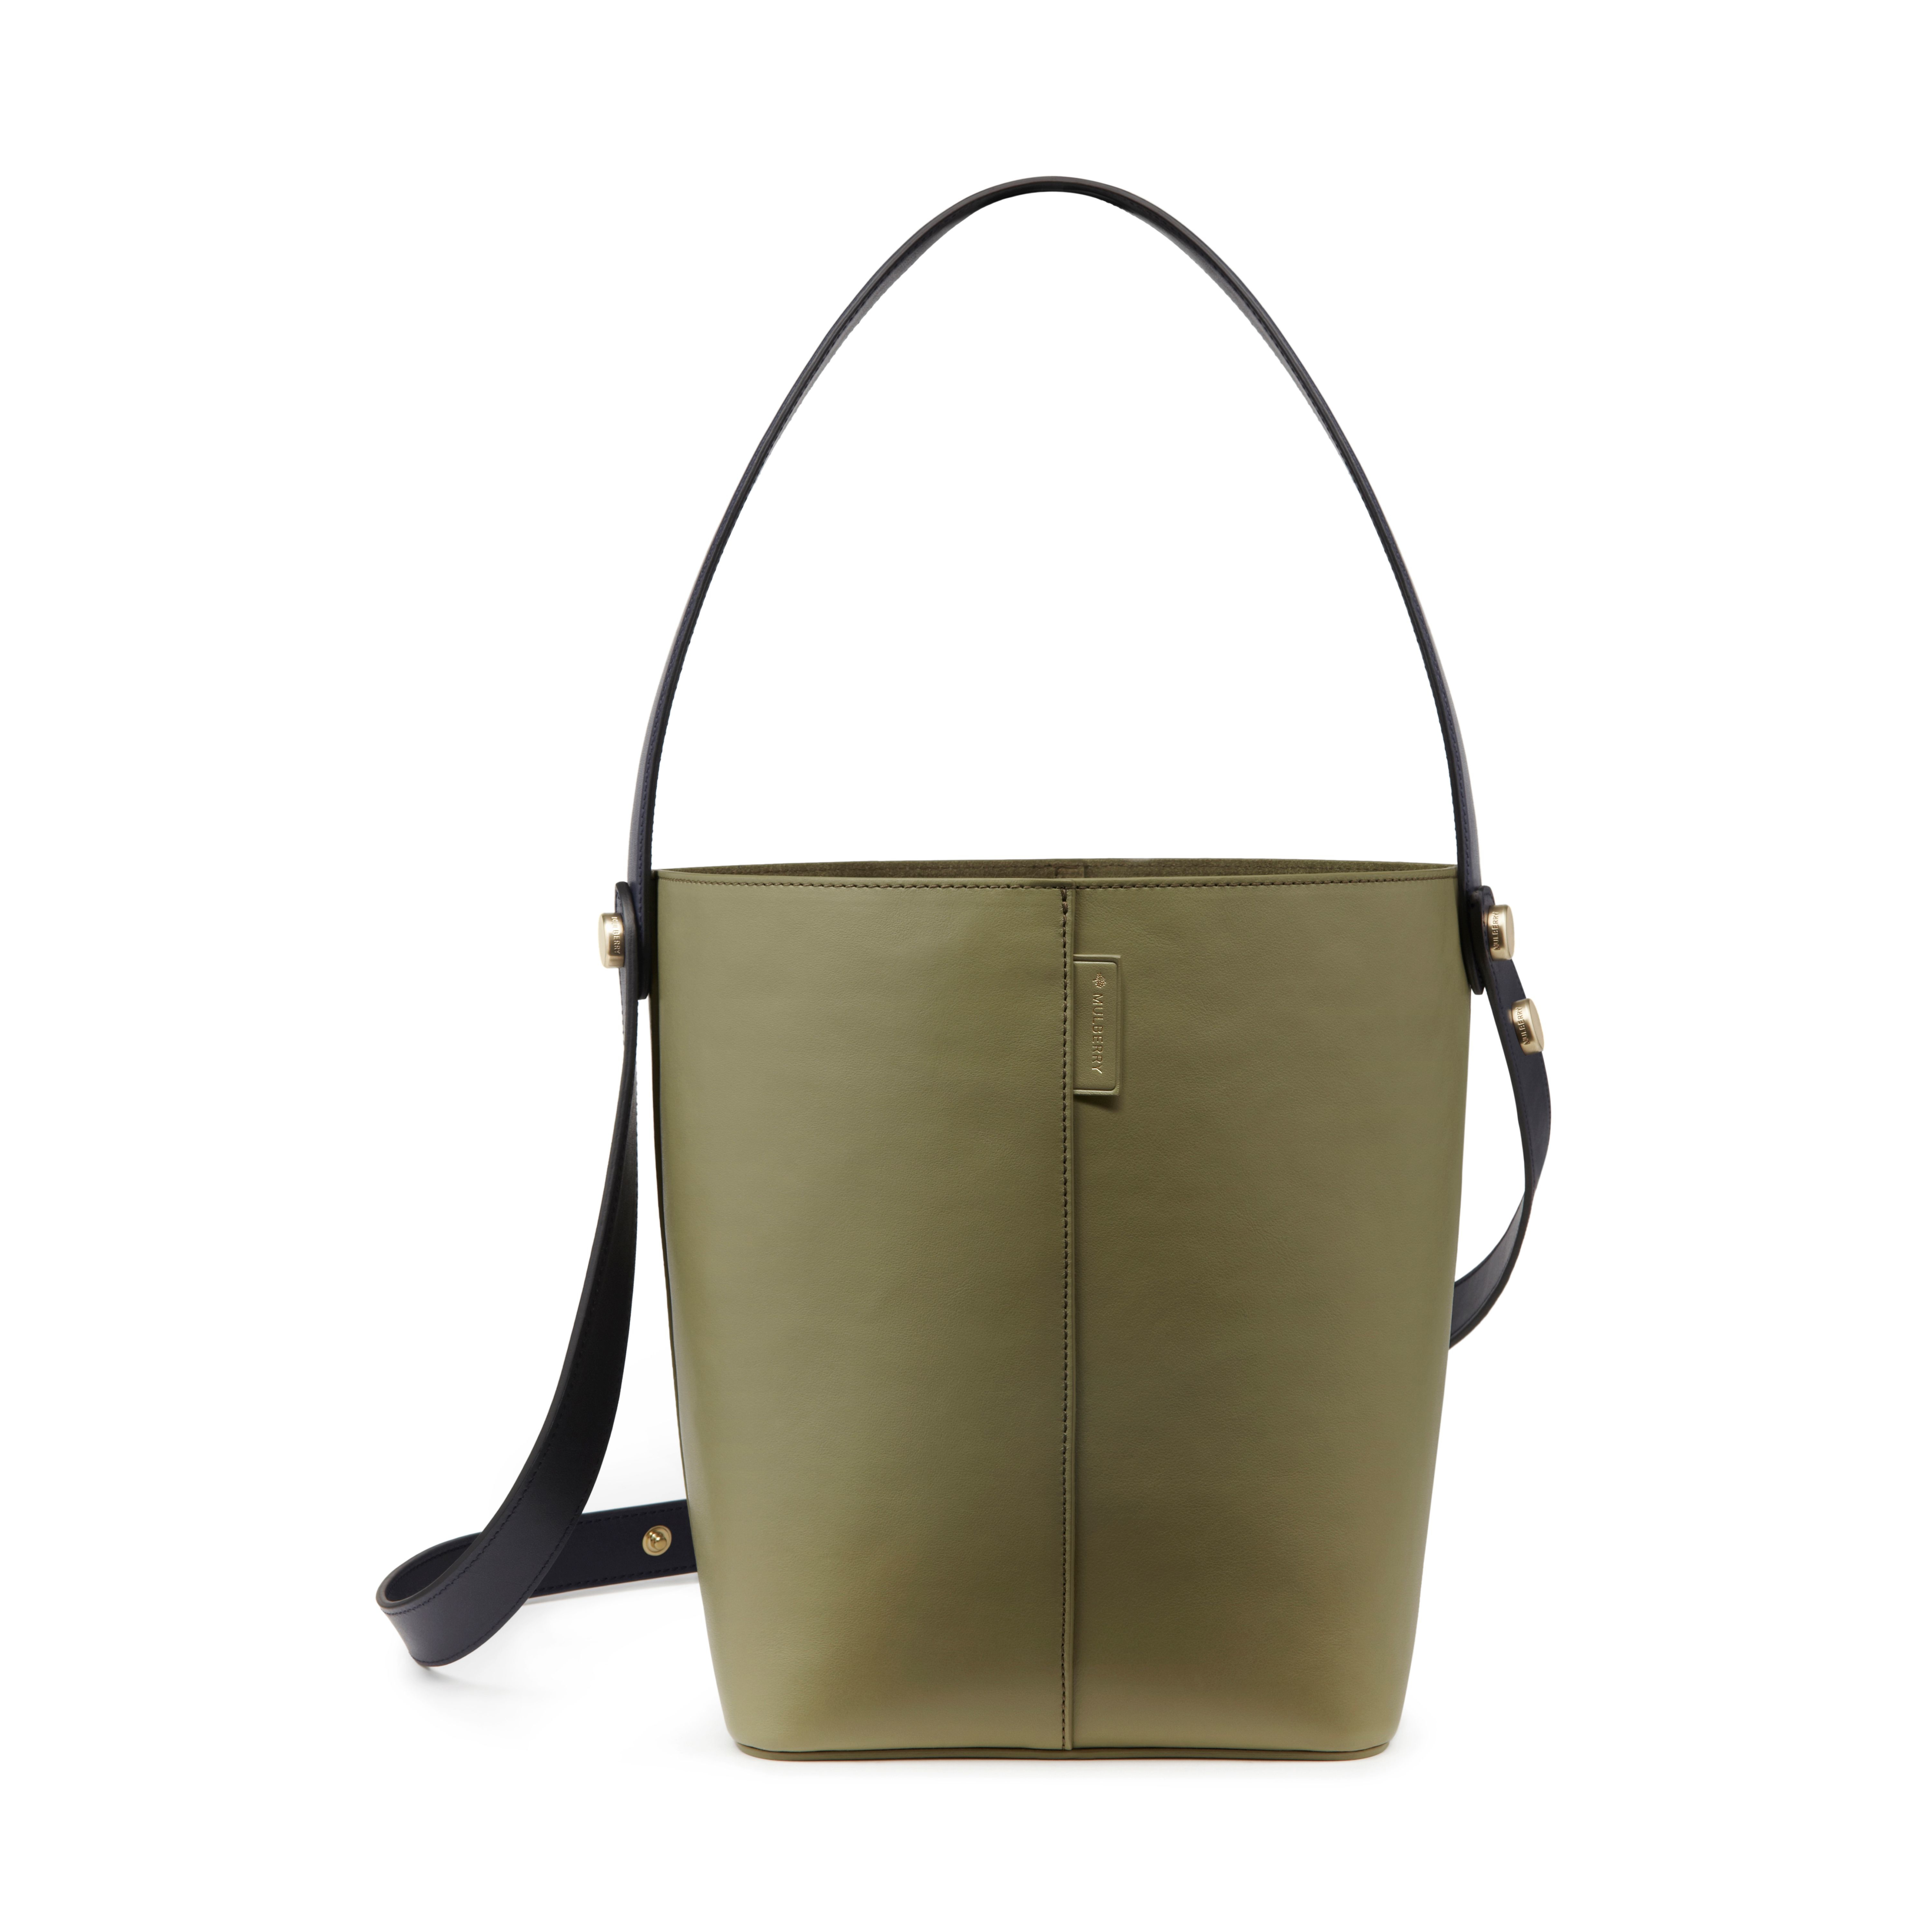 eb910e9f74 ... cheap lyst mulberry small kite leather tote in green 36ca4 dff9c